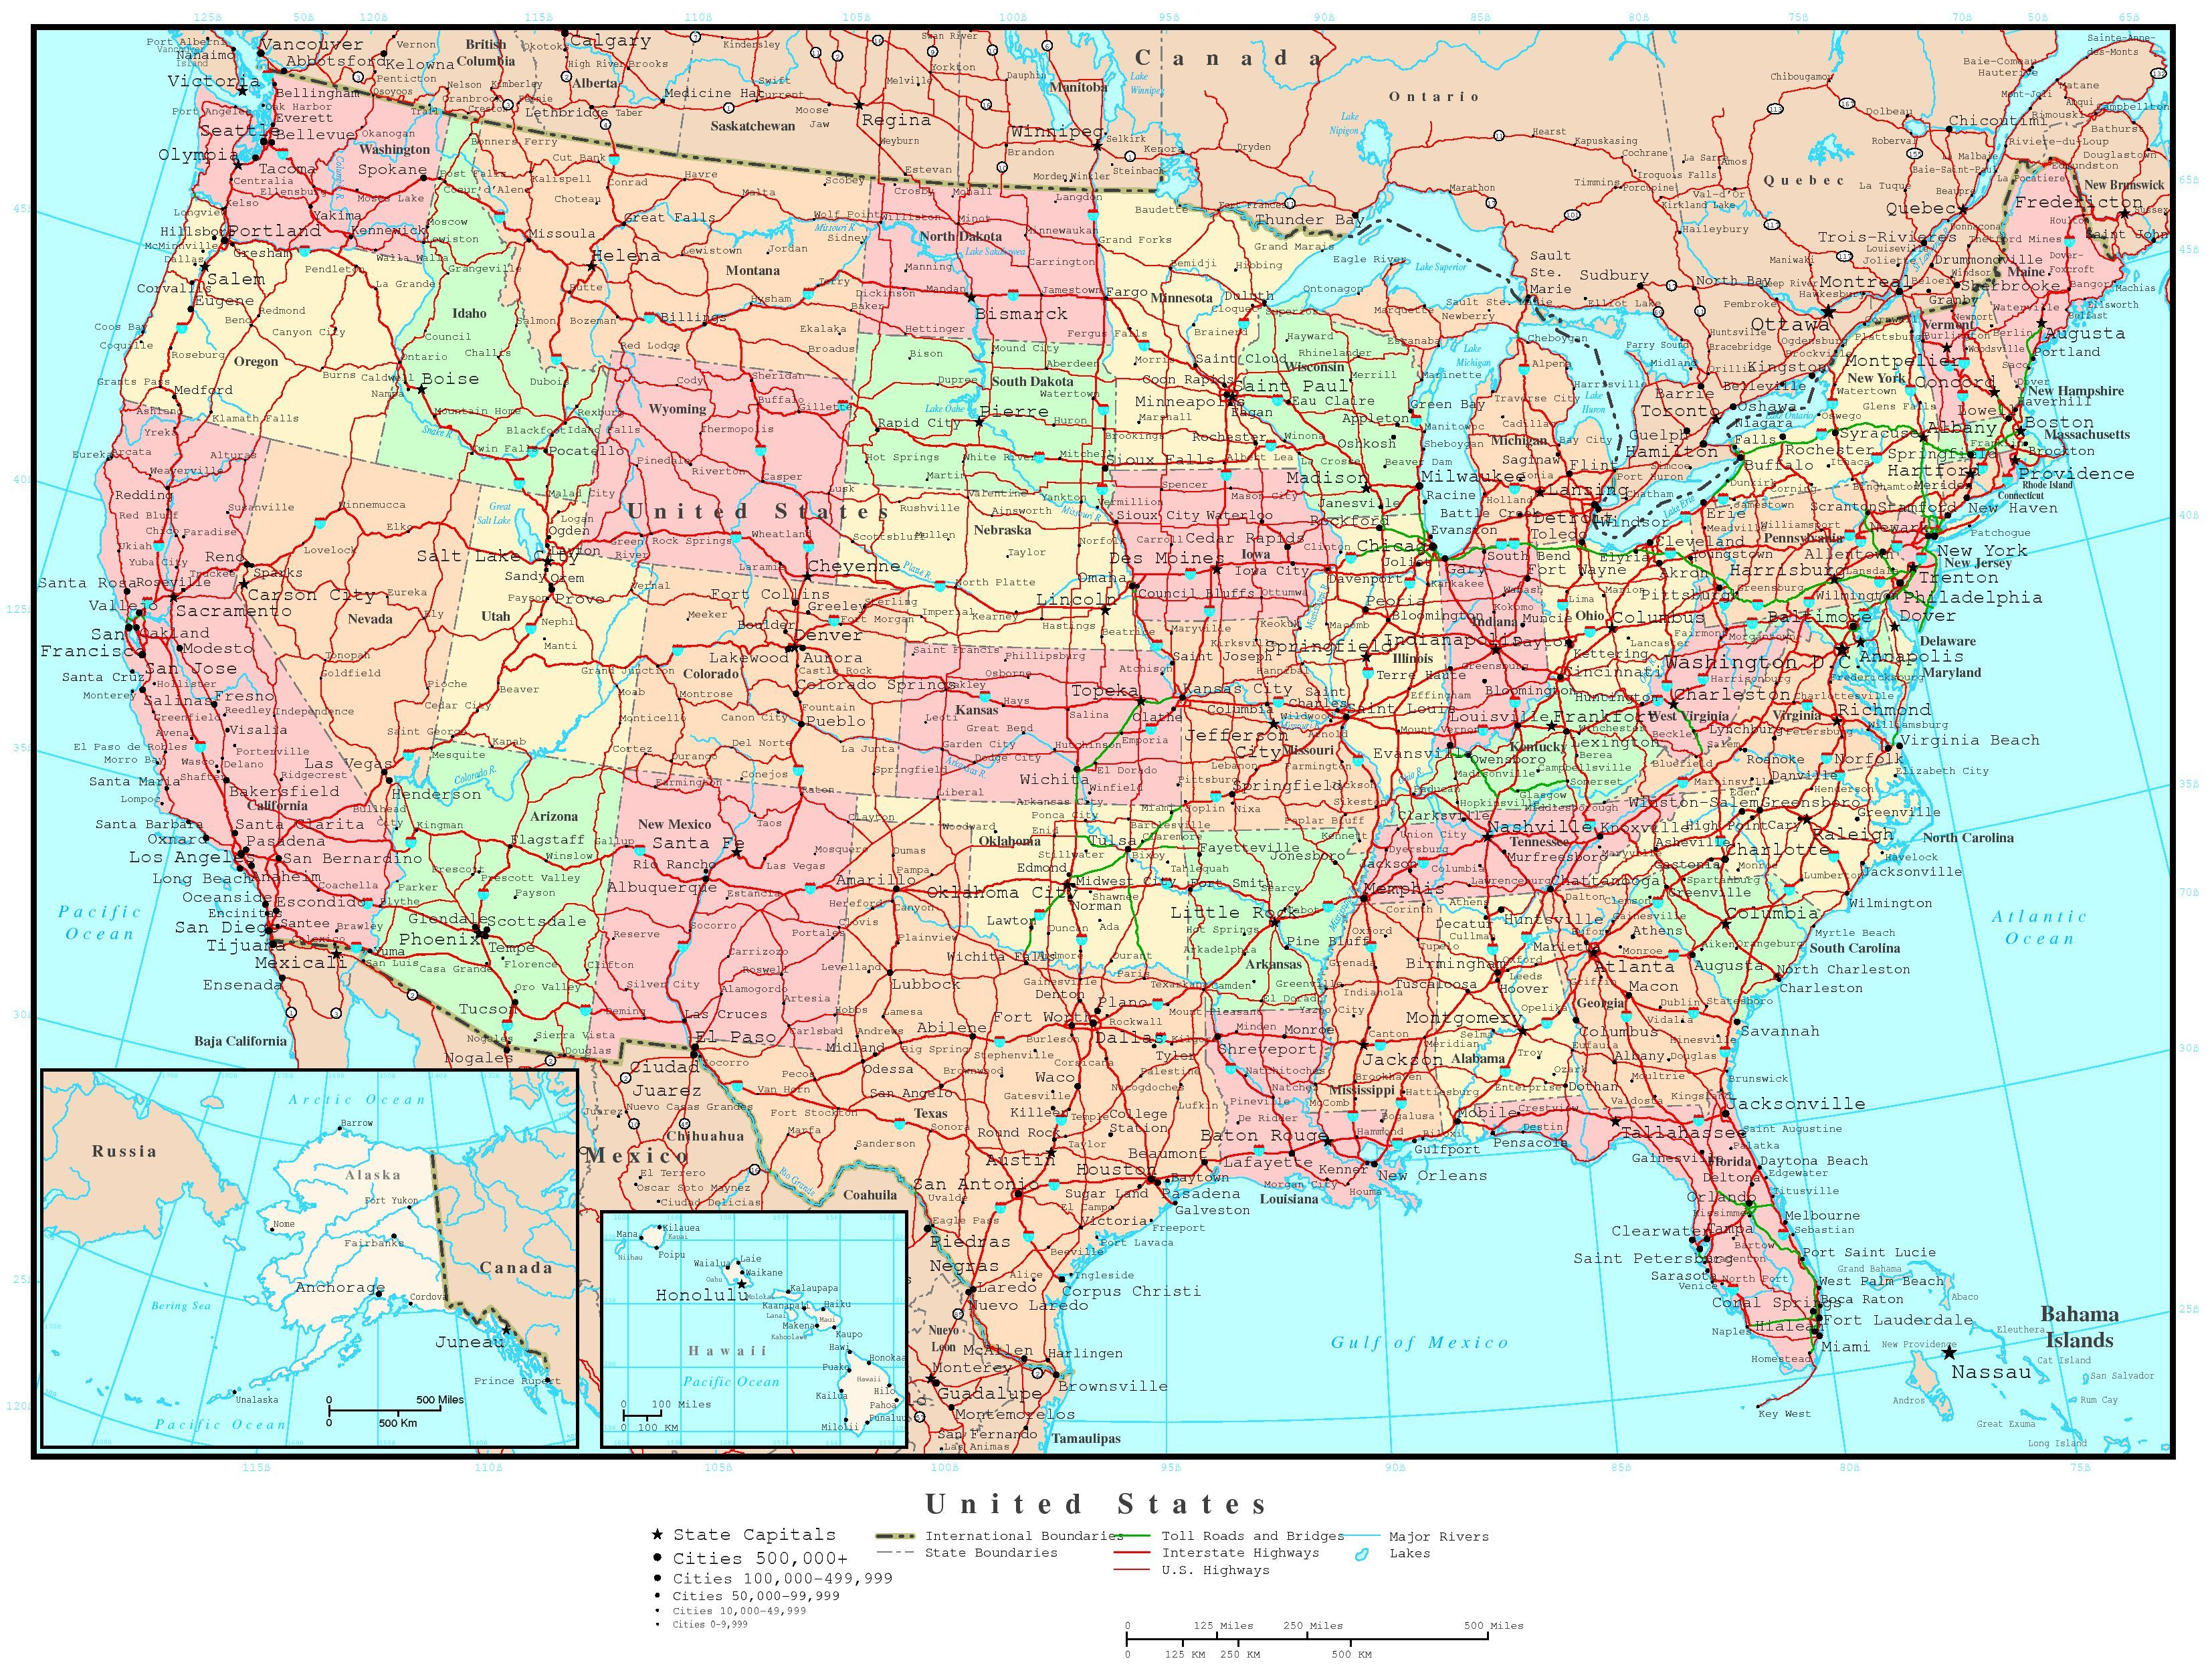 United States Interstate Highway Map Southeast USA Map National - Usa map cities and states and roads